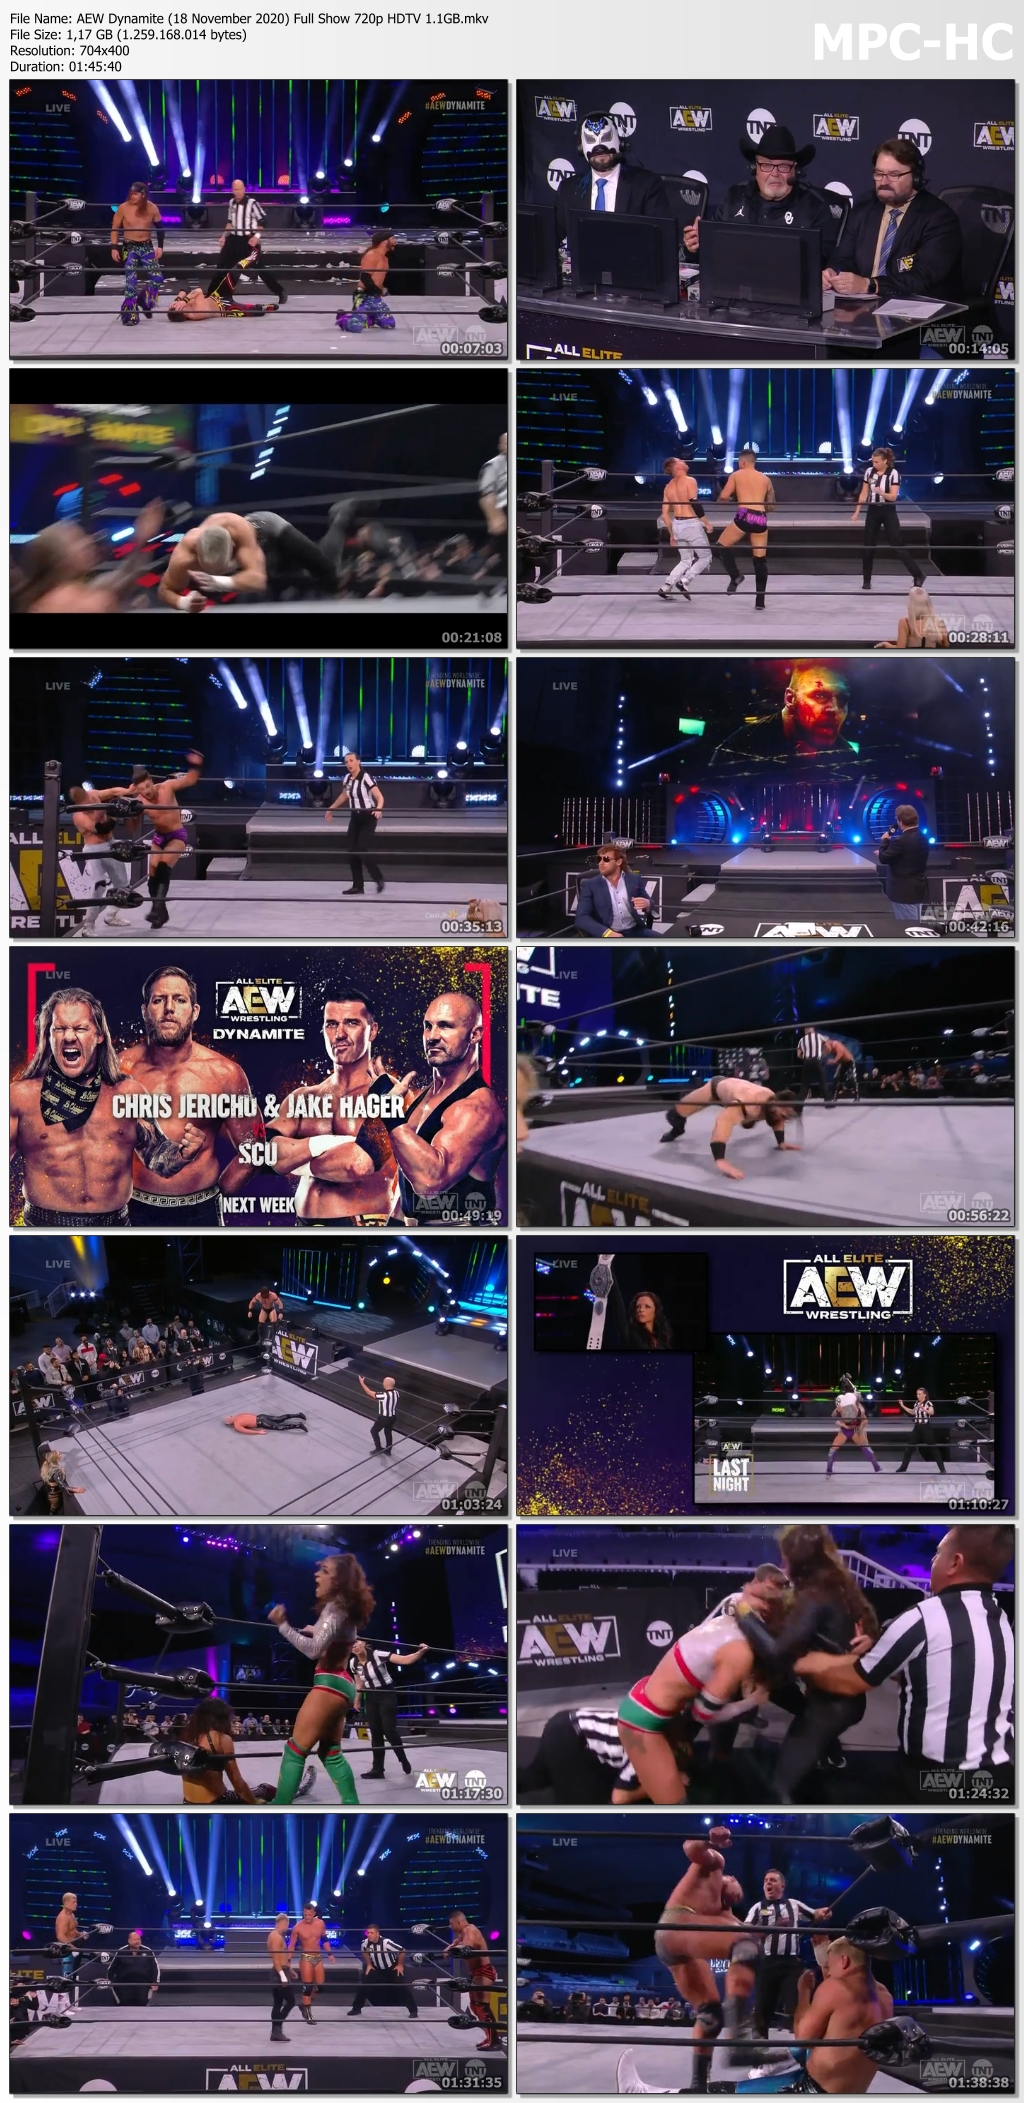 AEW-Dynamite-18-November-2020-Full-Show-720p-HDTV-1-1-GB-mkv-thumbs